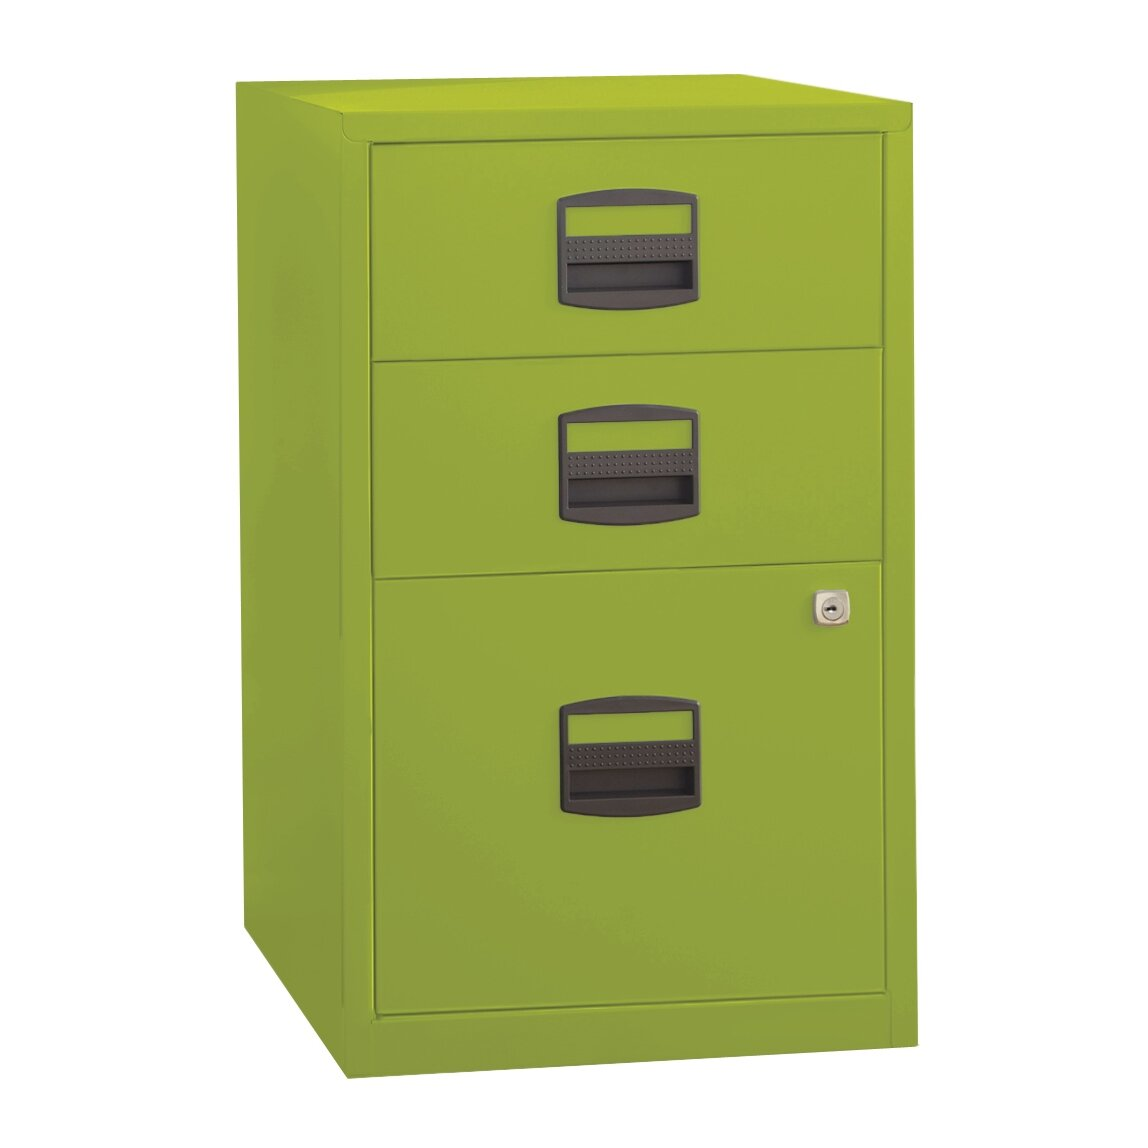 Green File Cabinet Varick Gallery Castaneda 3 Drawer Steel Home Or Office Filing